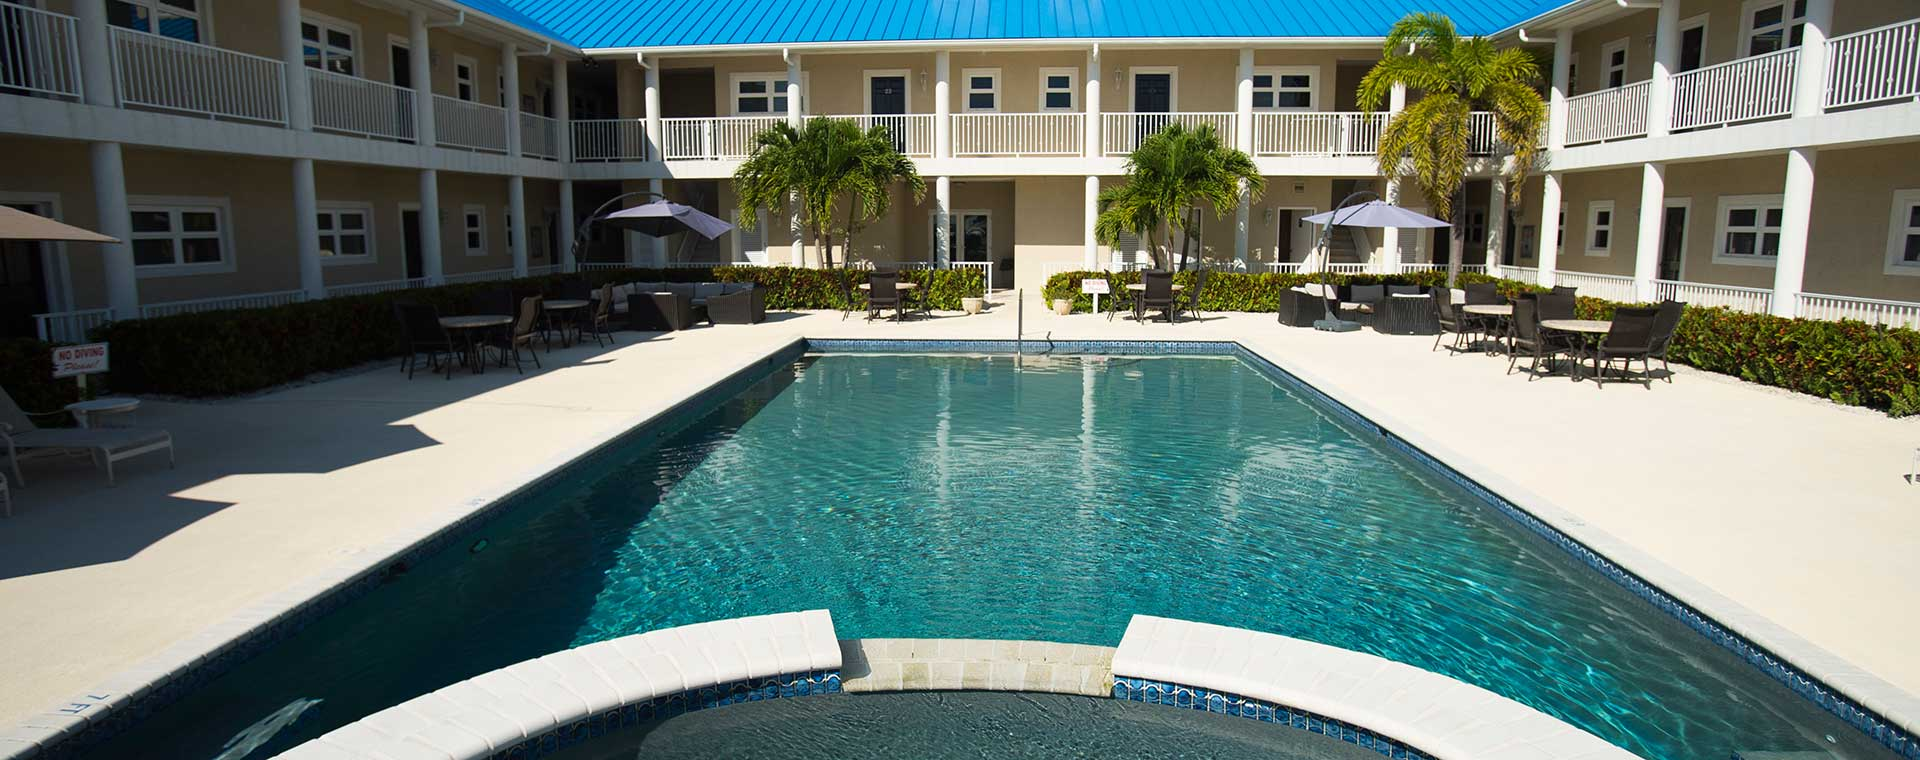 blue marlin cove condos